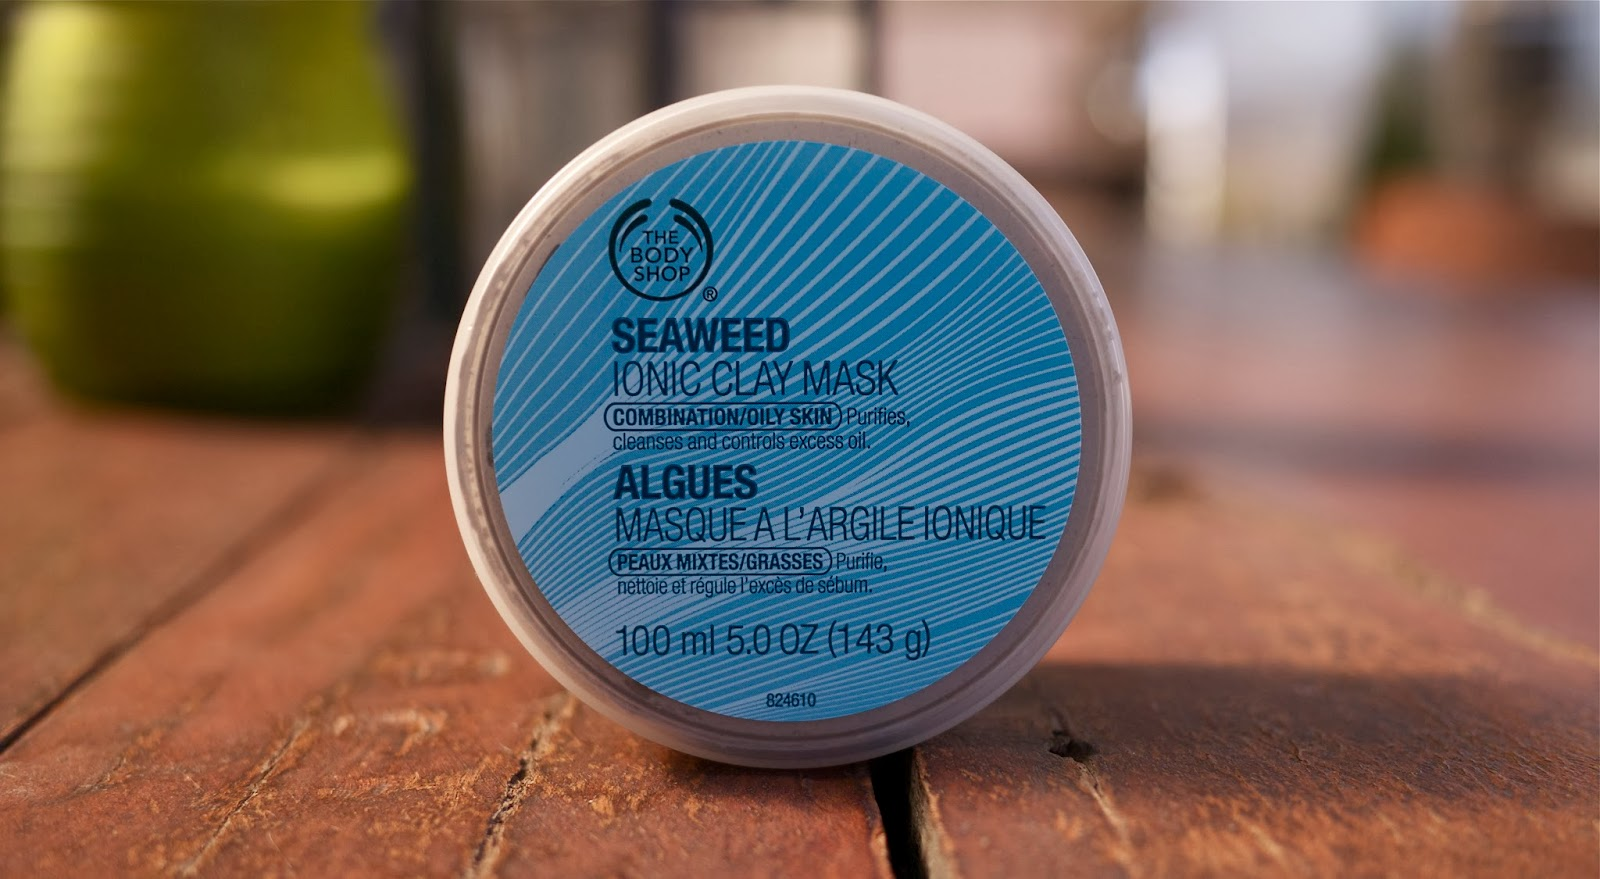 Born to Buy: The Body Shop Seaweed Ionic Clay Mask Review